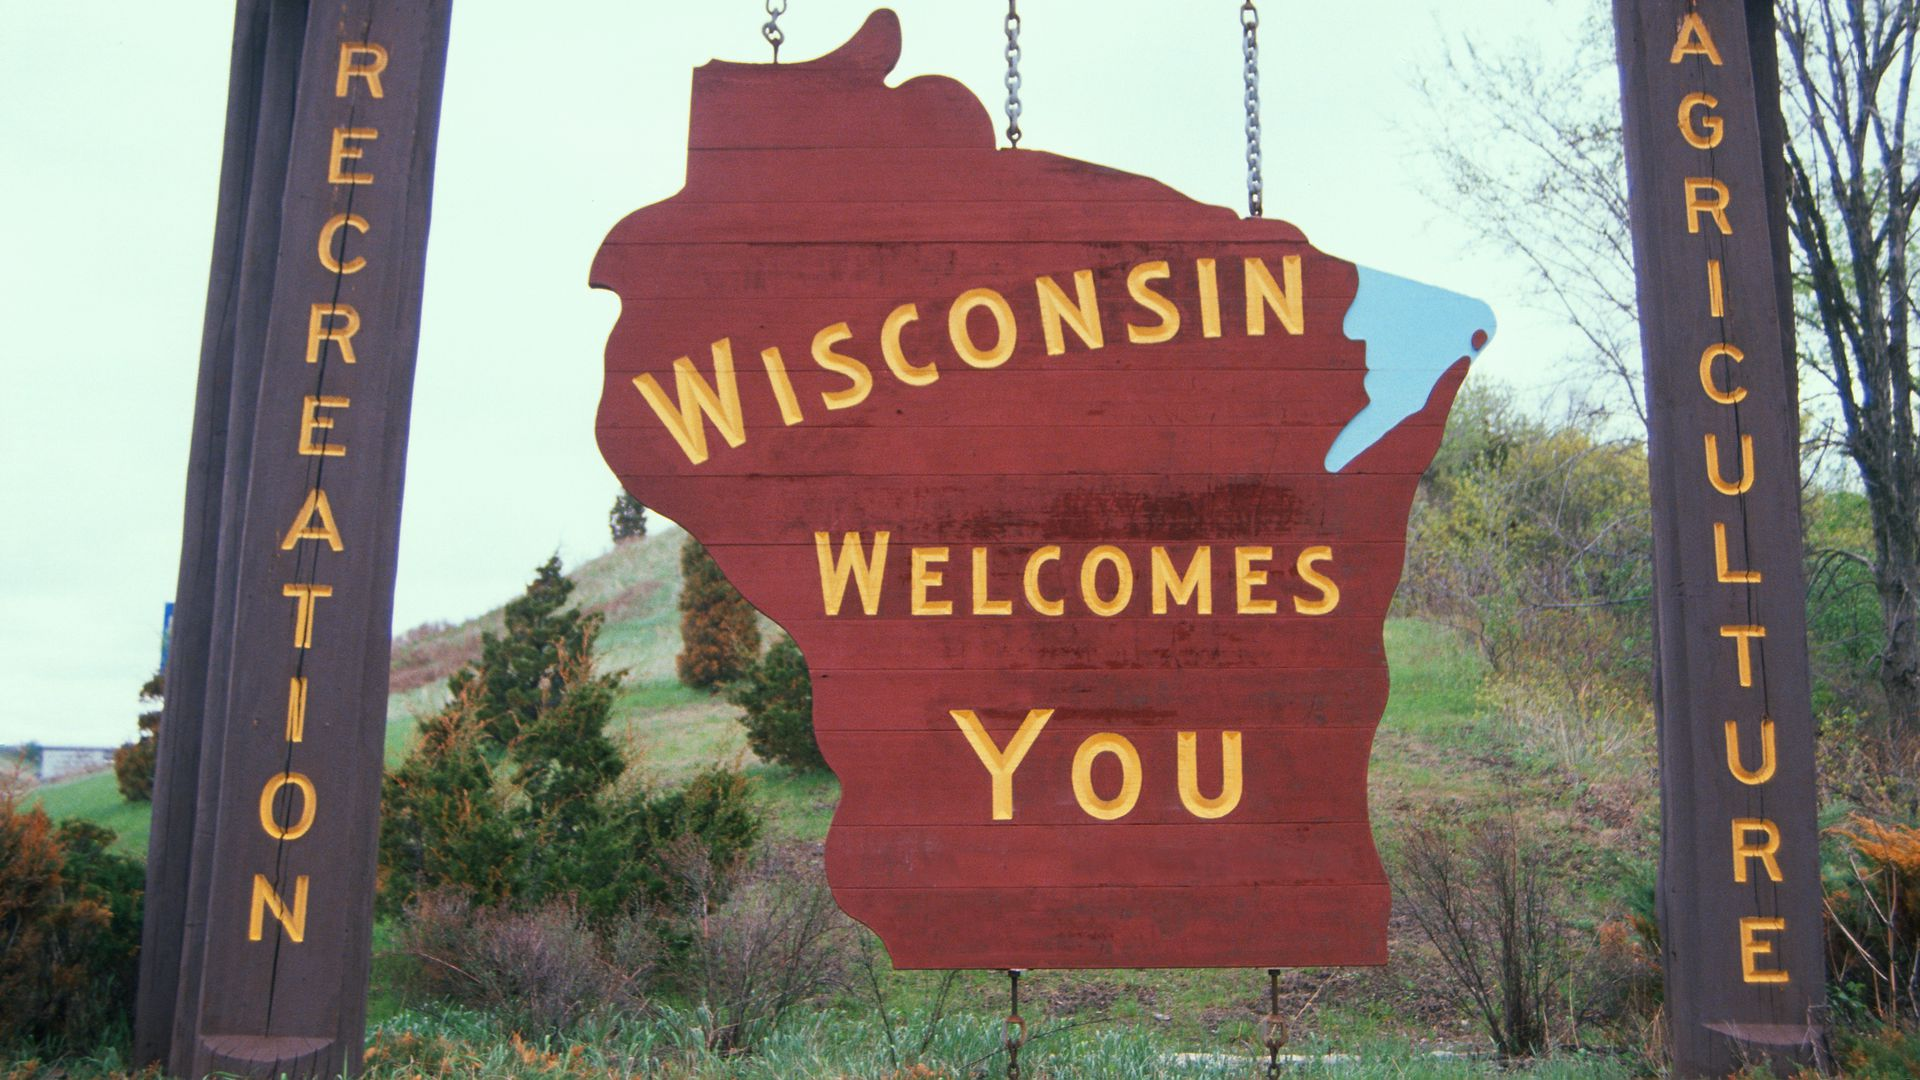 A welcome to Wisconsin sign